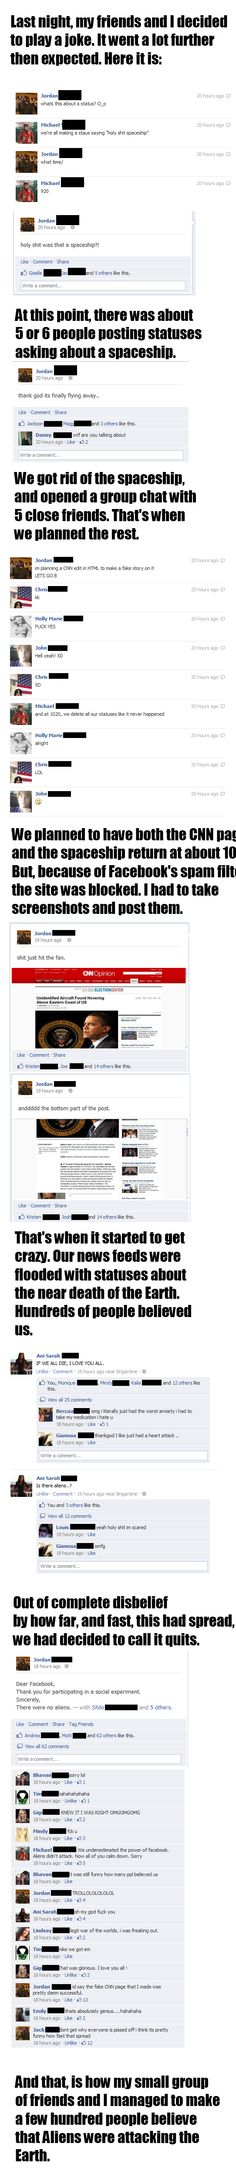 A night well spent trolling Facebook | Funny Pictures, Videos, Pics